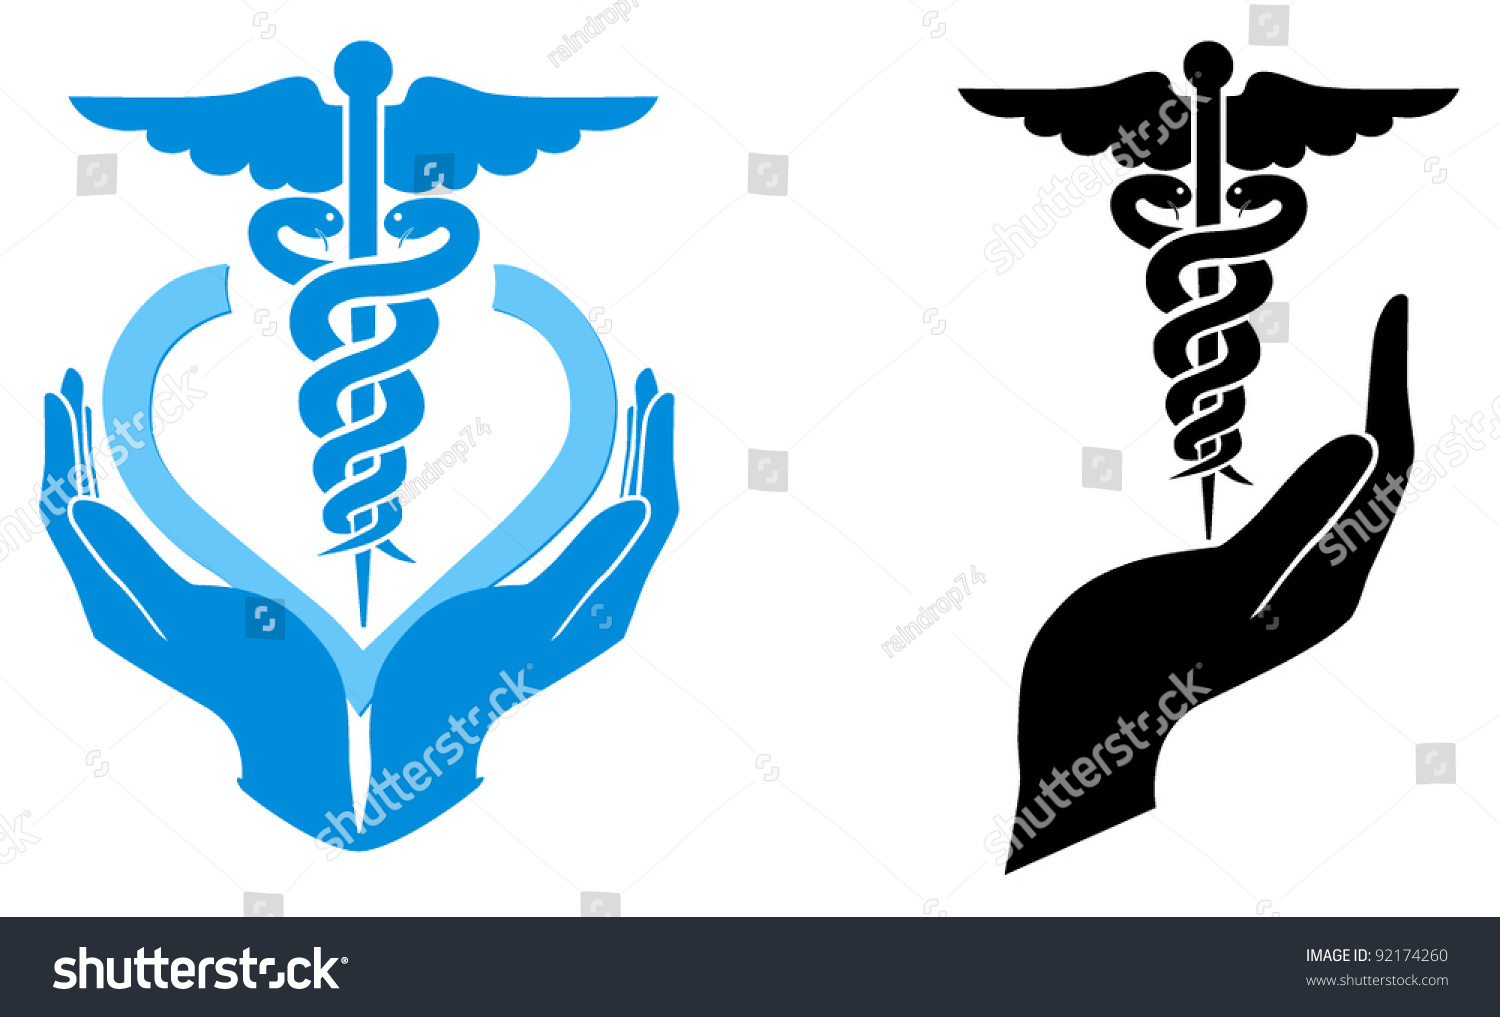 5434 Best Medical Caduceus Free Vector Art Downloads from the Vecteezy community Medical Caduceus Free Vector Art licensed under creative commons open source and more!